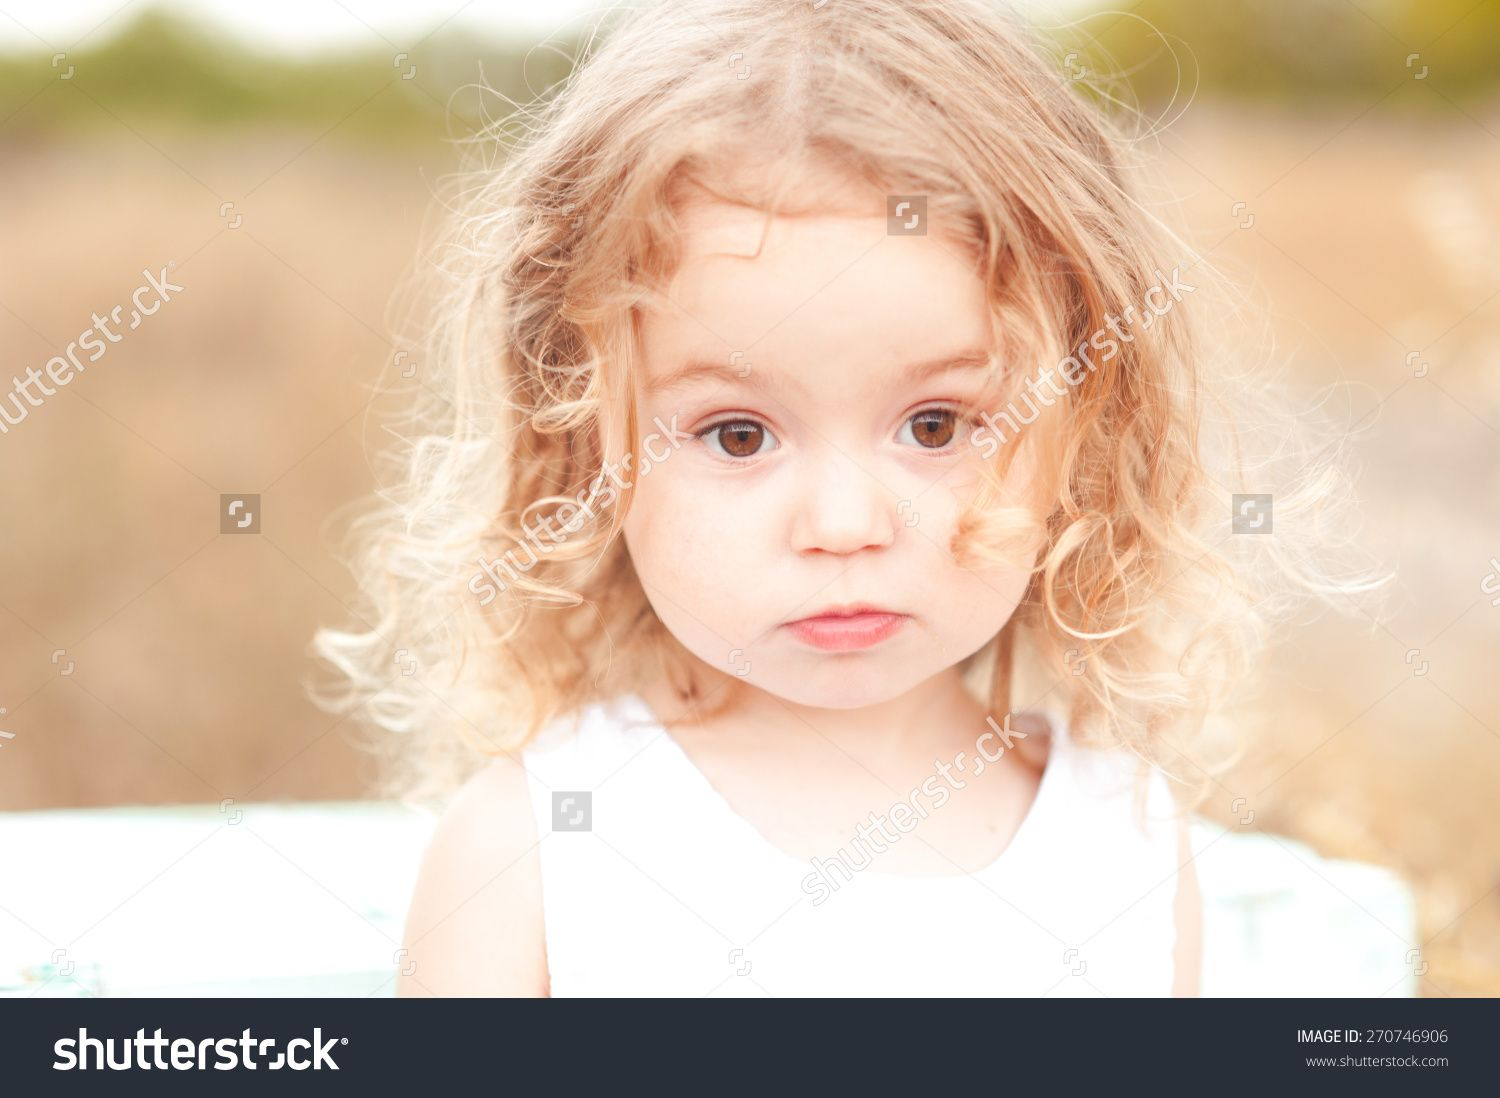 Image Result For Little Girl Curly Haircut Baby Boy Hairstyles Baby Boy Haircuts Baby Girl Hairstyles